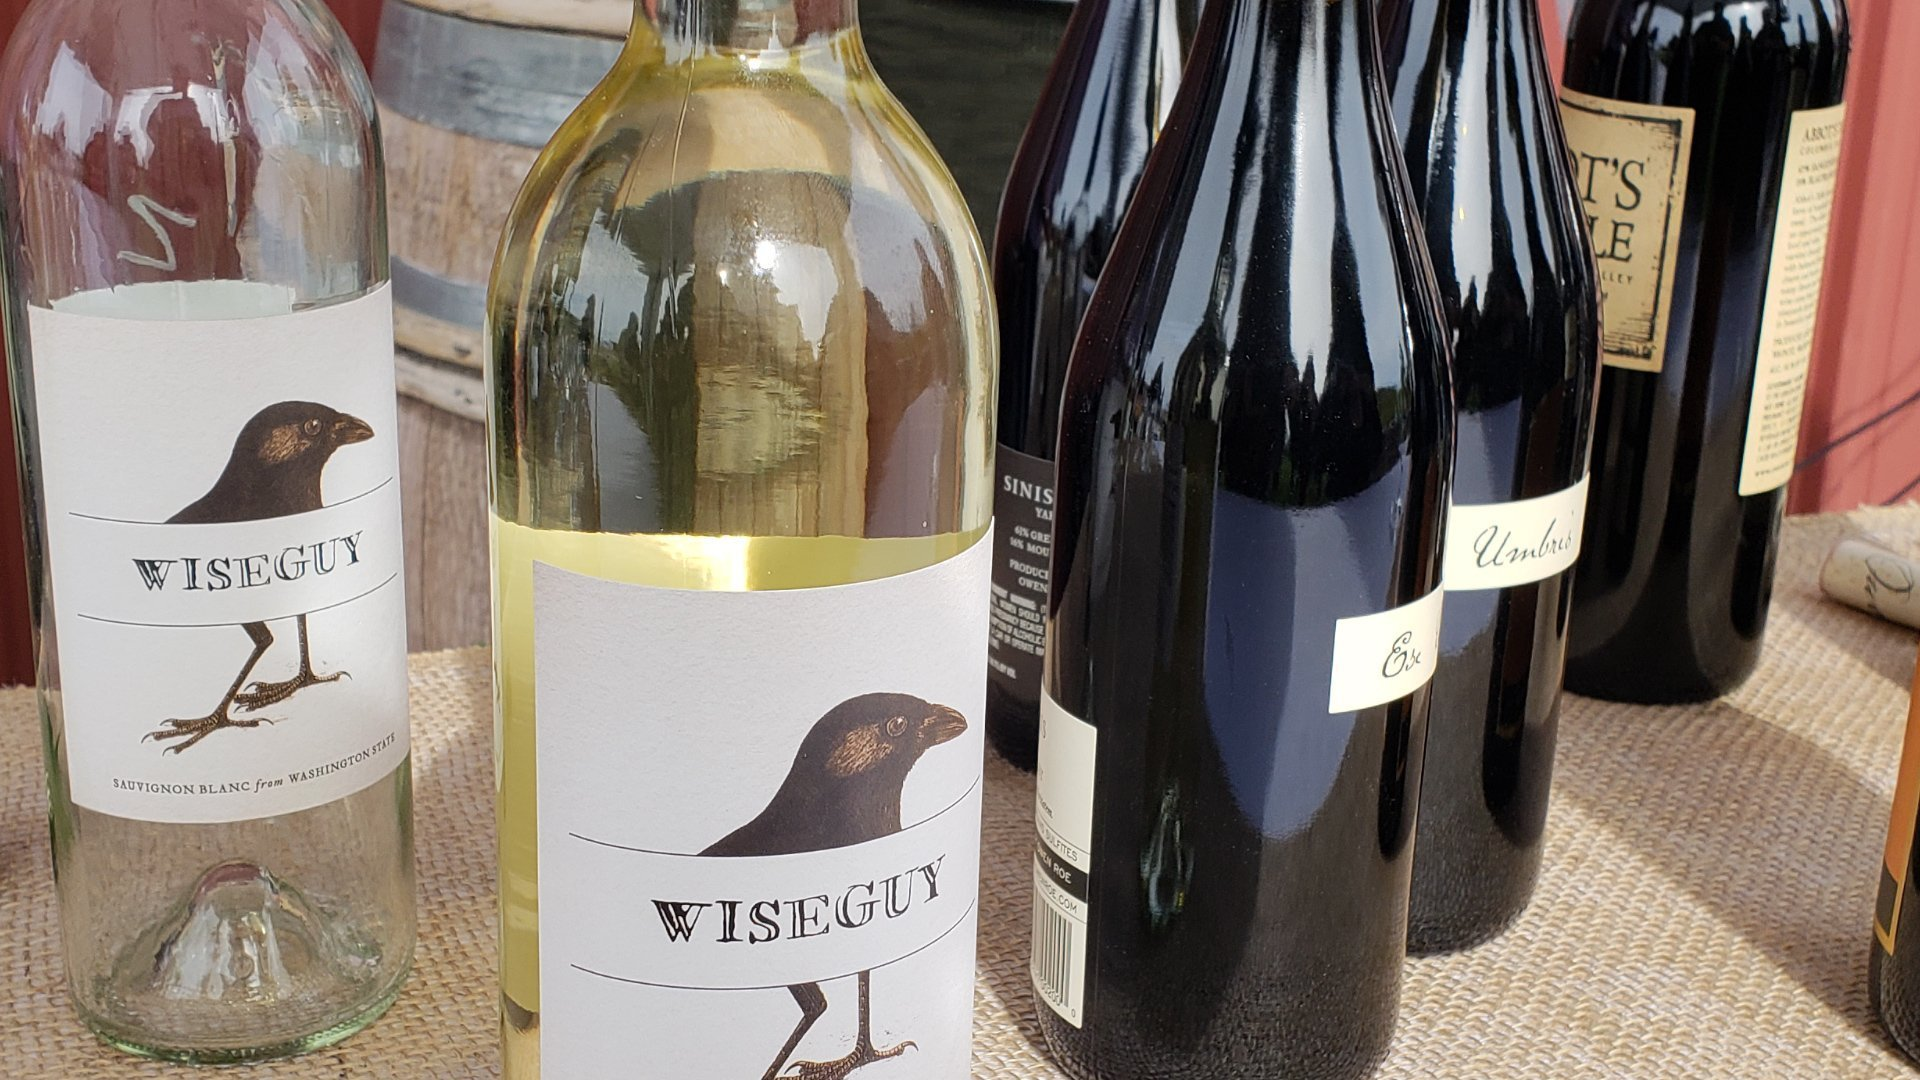 Wiseguy Wine at Wine Yakima Valley Flavor Camp 2018